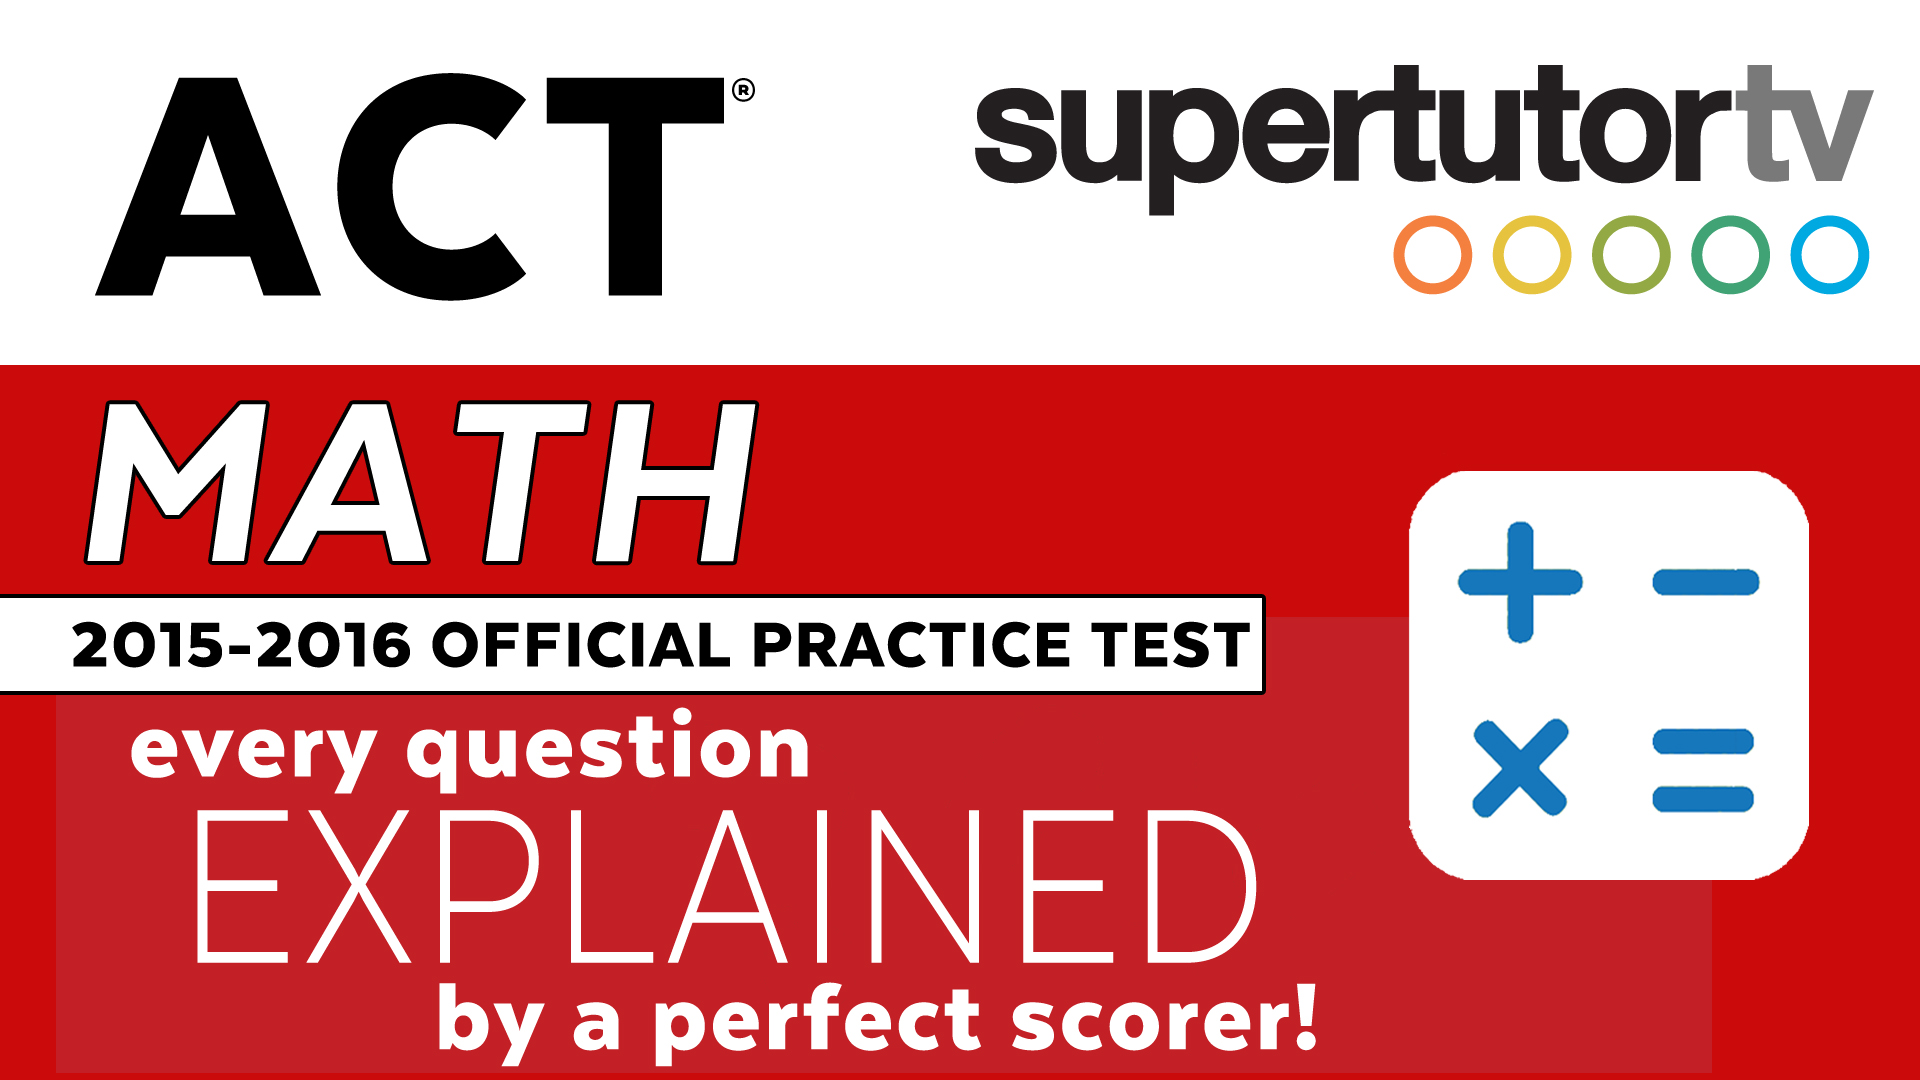 Free Video Explanations For Official Act Math Practice Test